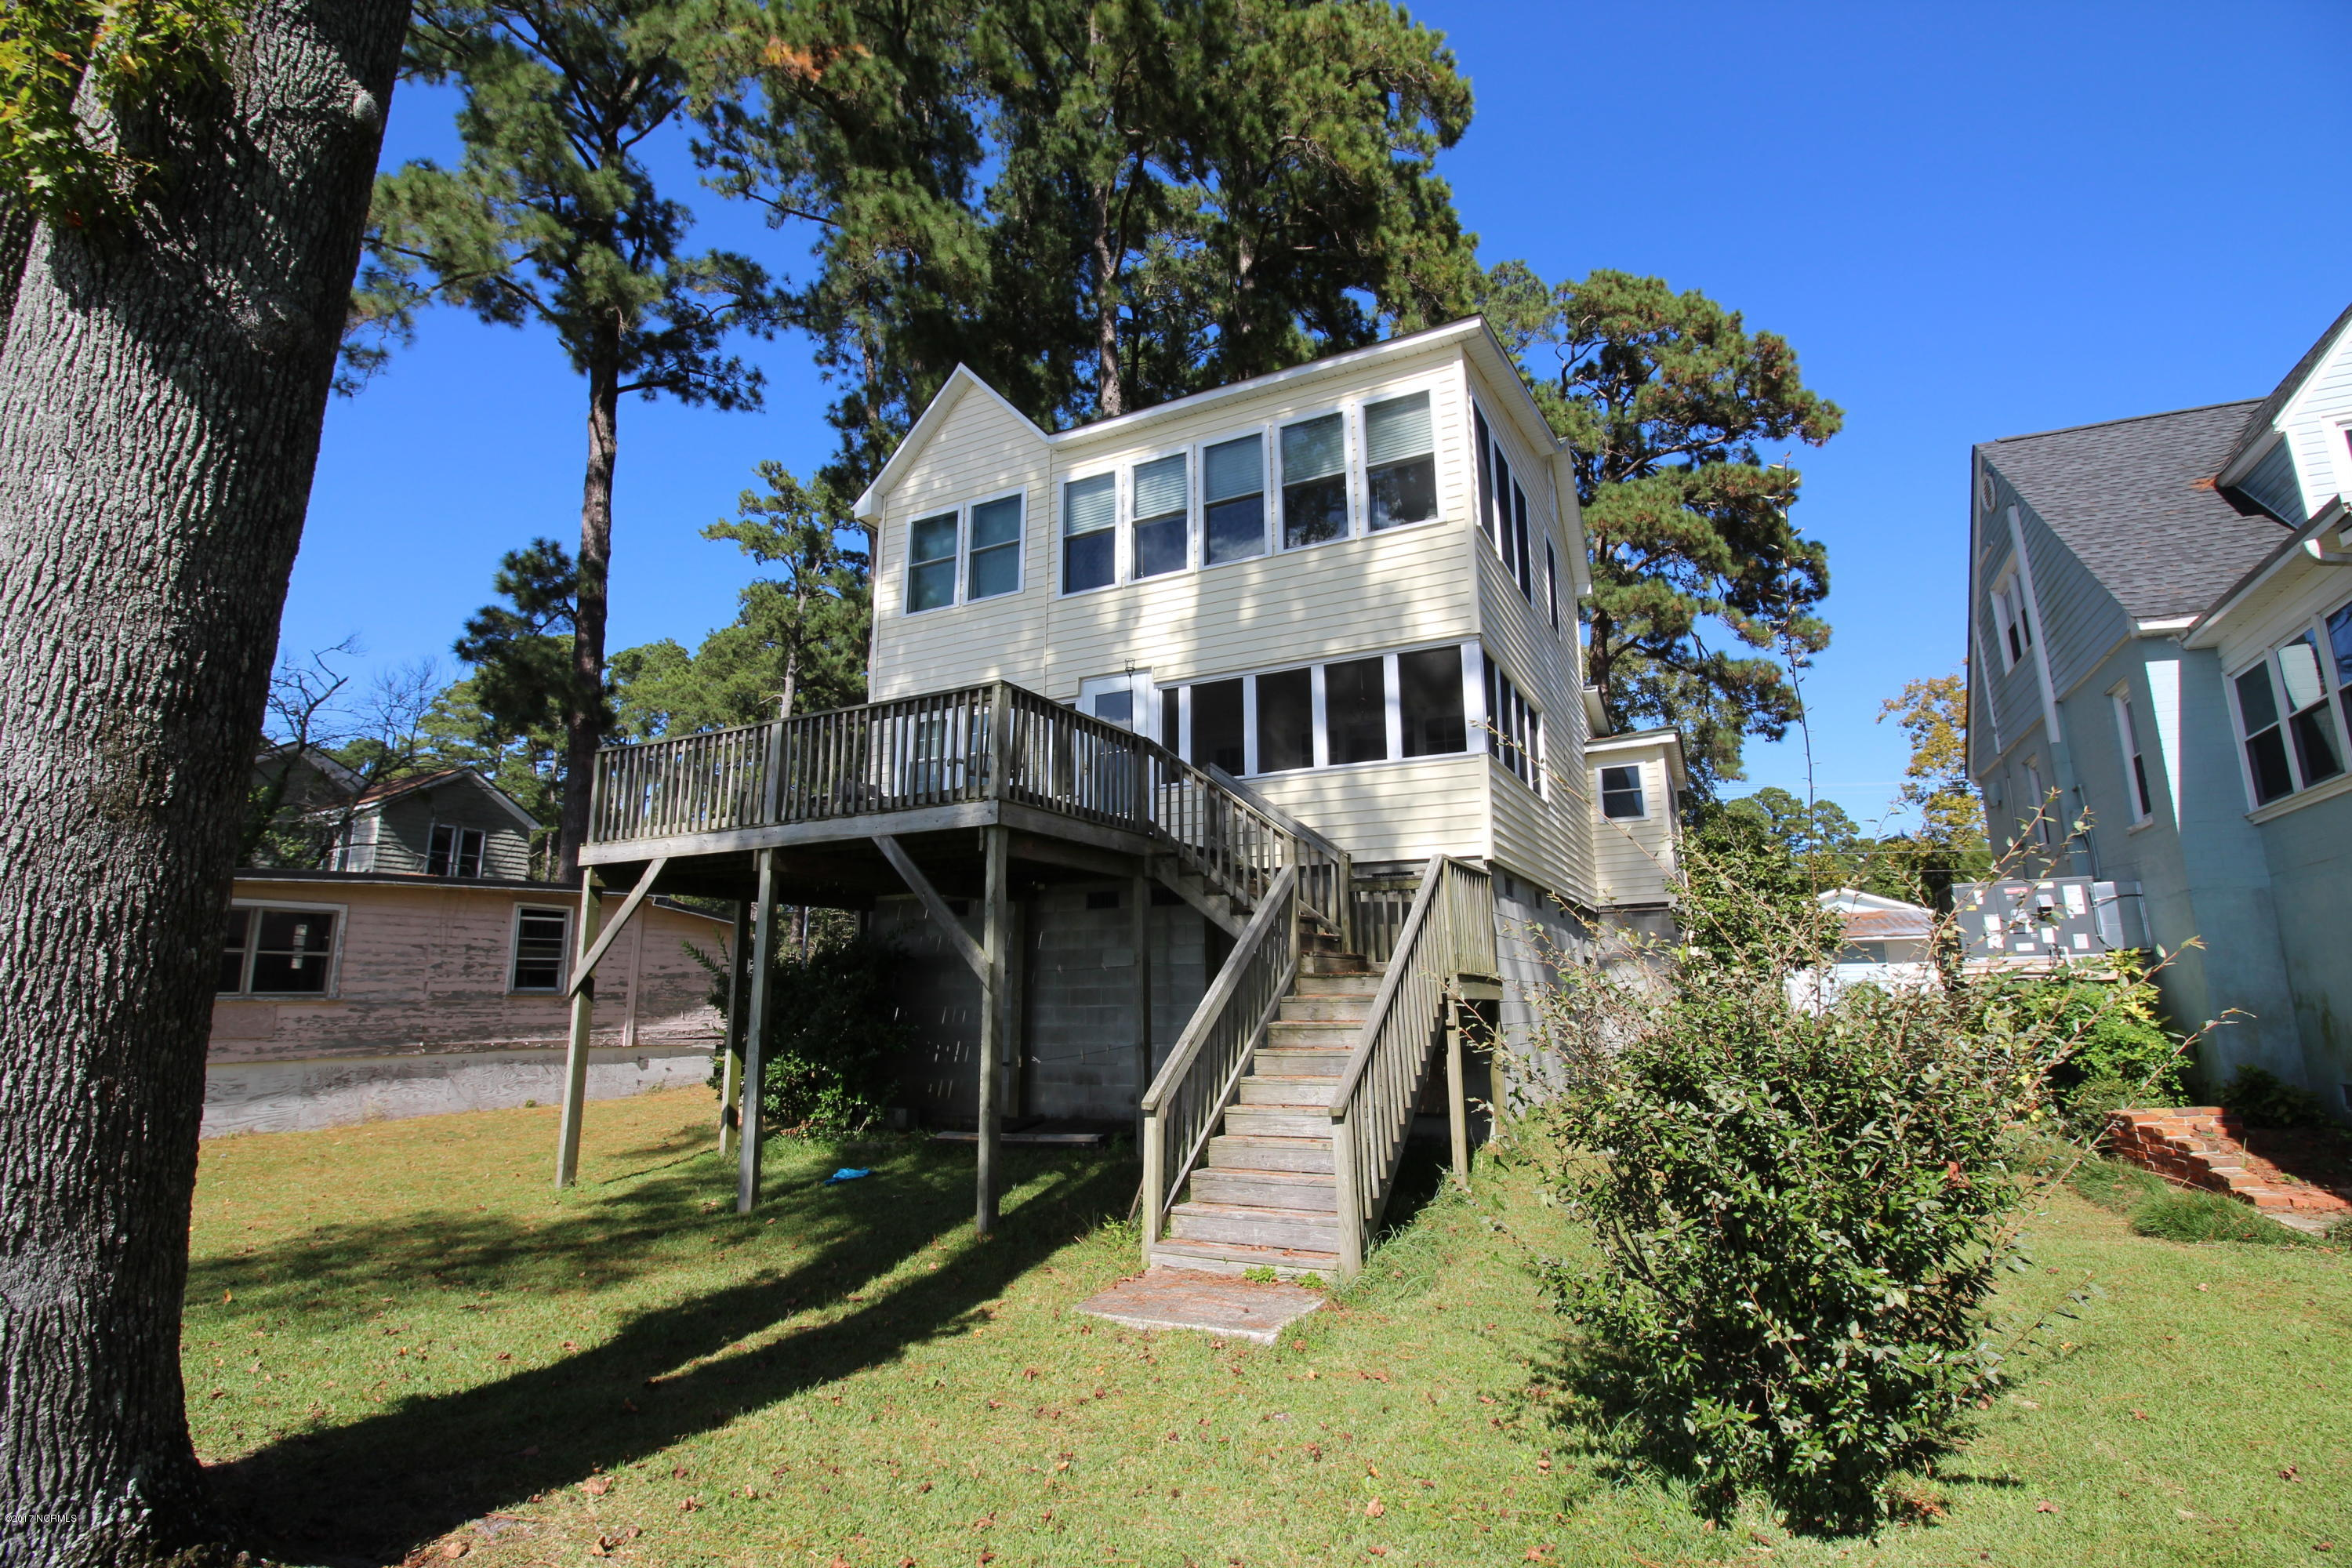 218 Shady Banks Beach Road, Washington, North Carolina 27889, 3 Bedrooms Bedrooms, 7 Rooms Rooms,1 BathroomBathrooms,Single family residence,For sale,Shady Banks Beach,100084888